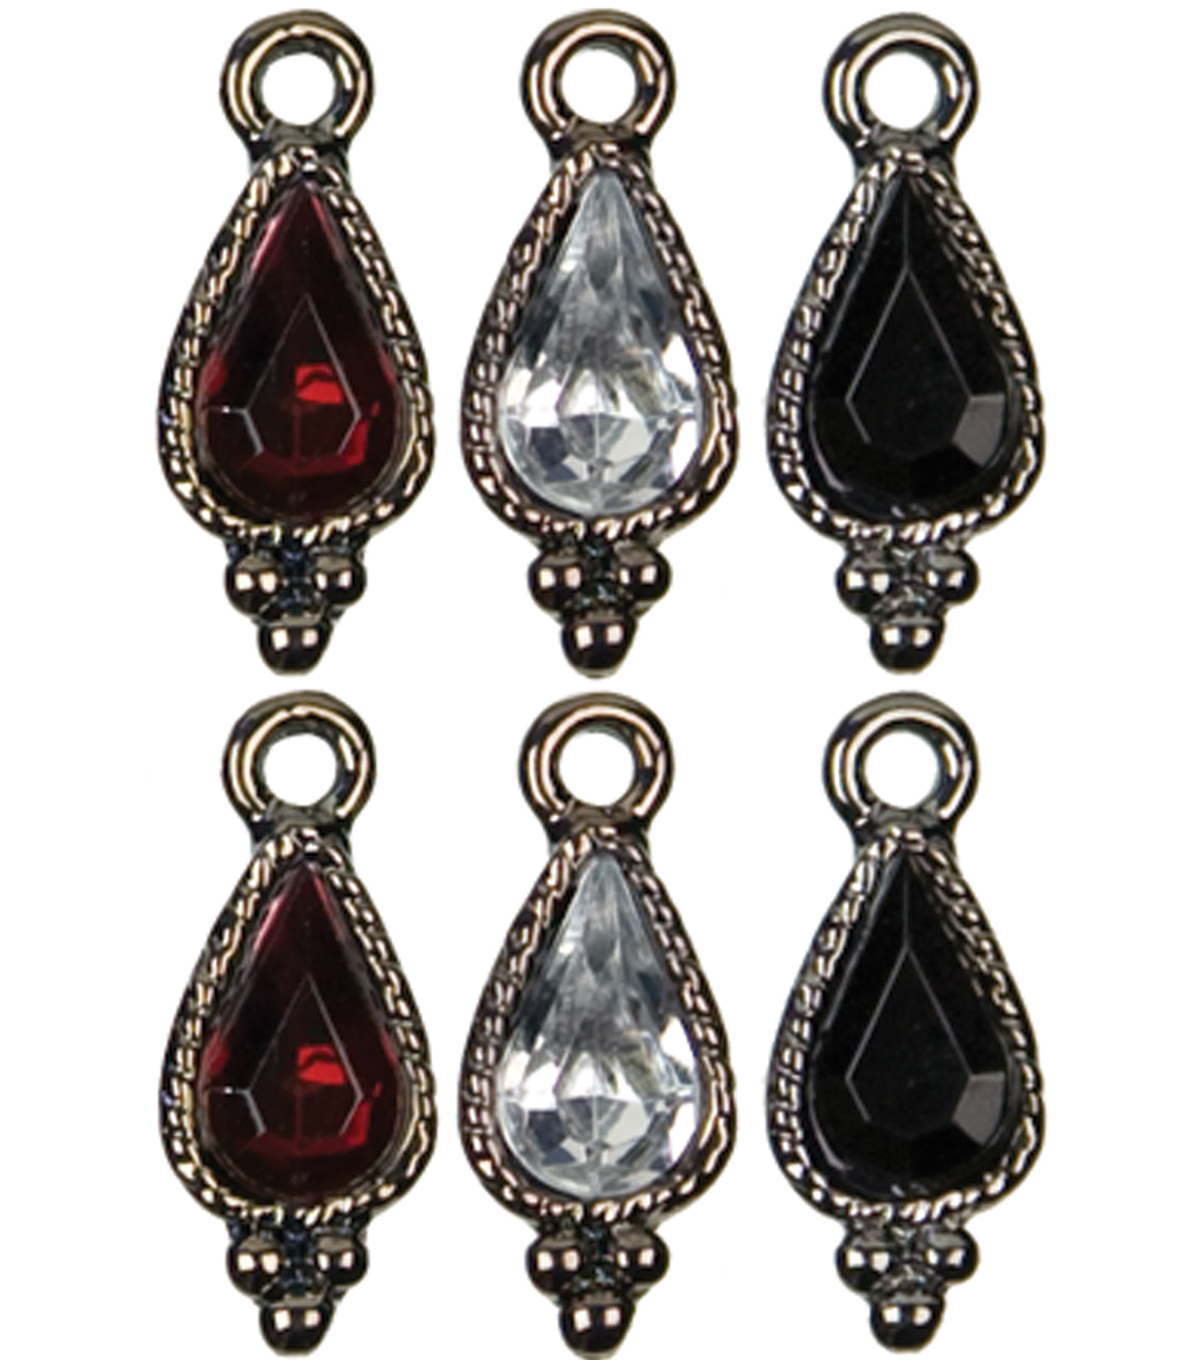 Jewelry Basics Metal Charms 6/Pk-Gunmetal Teardrop